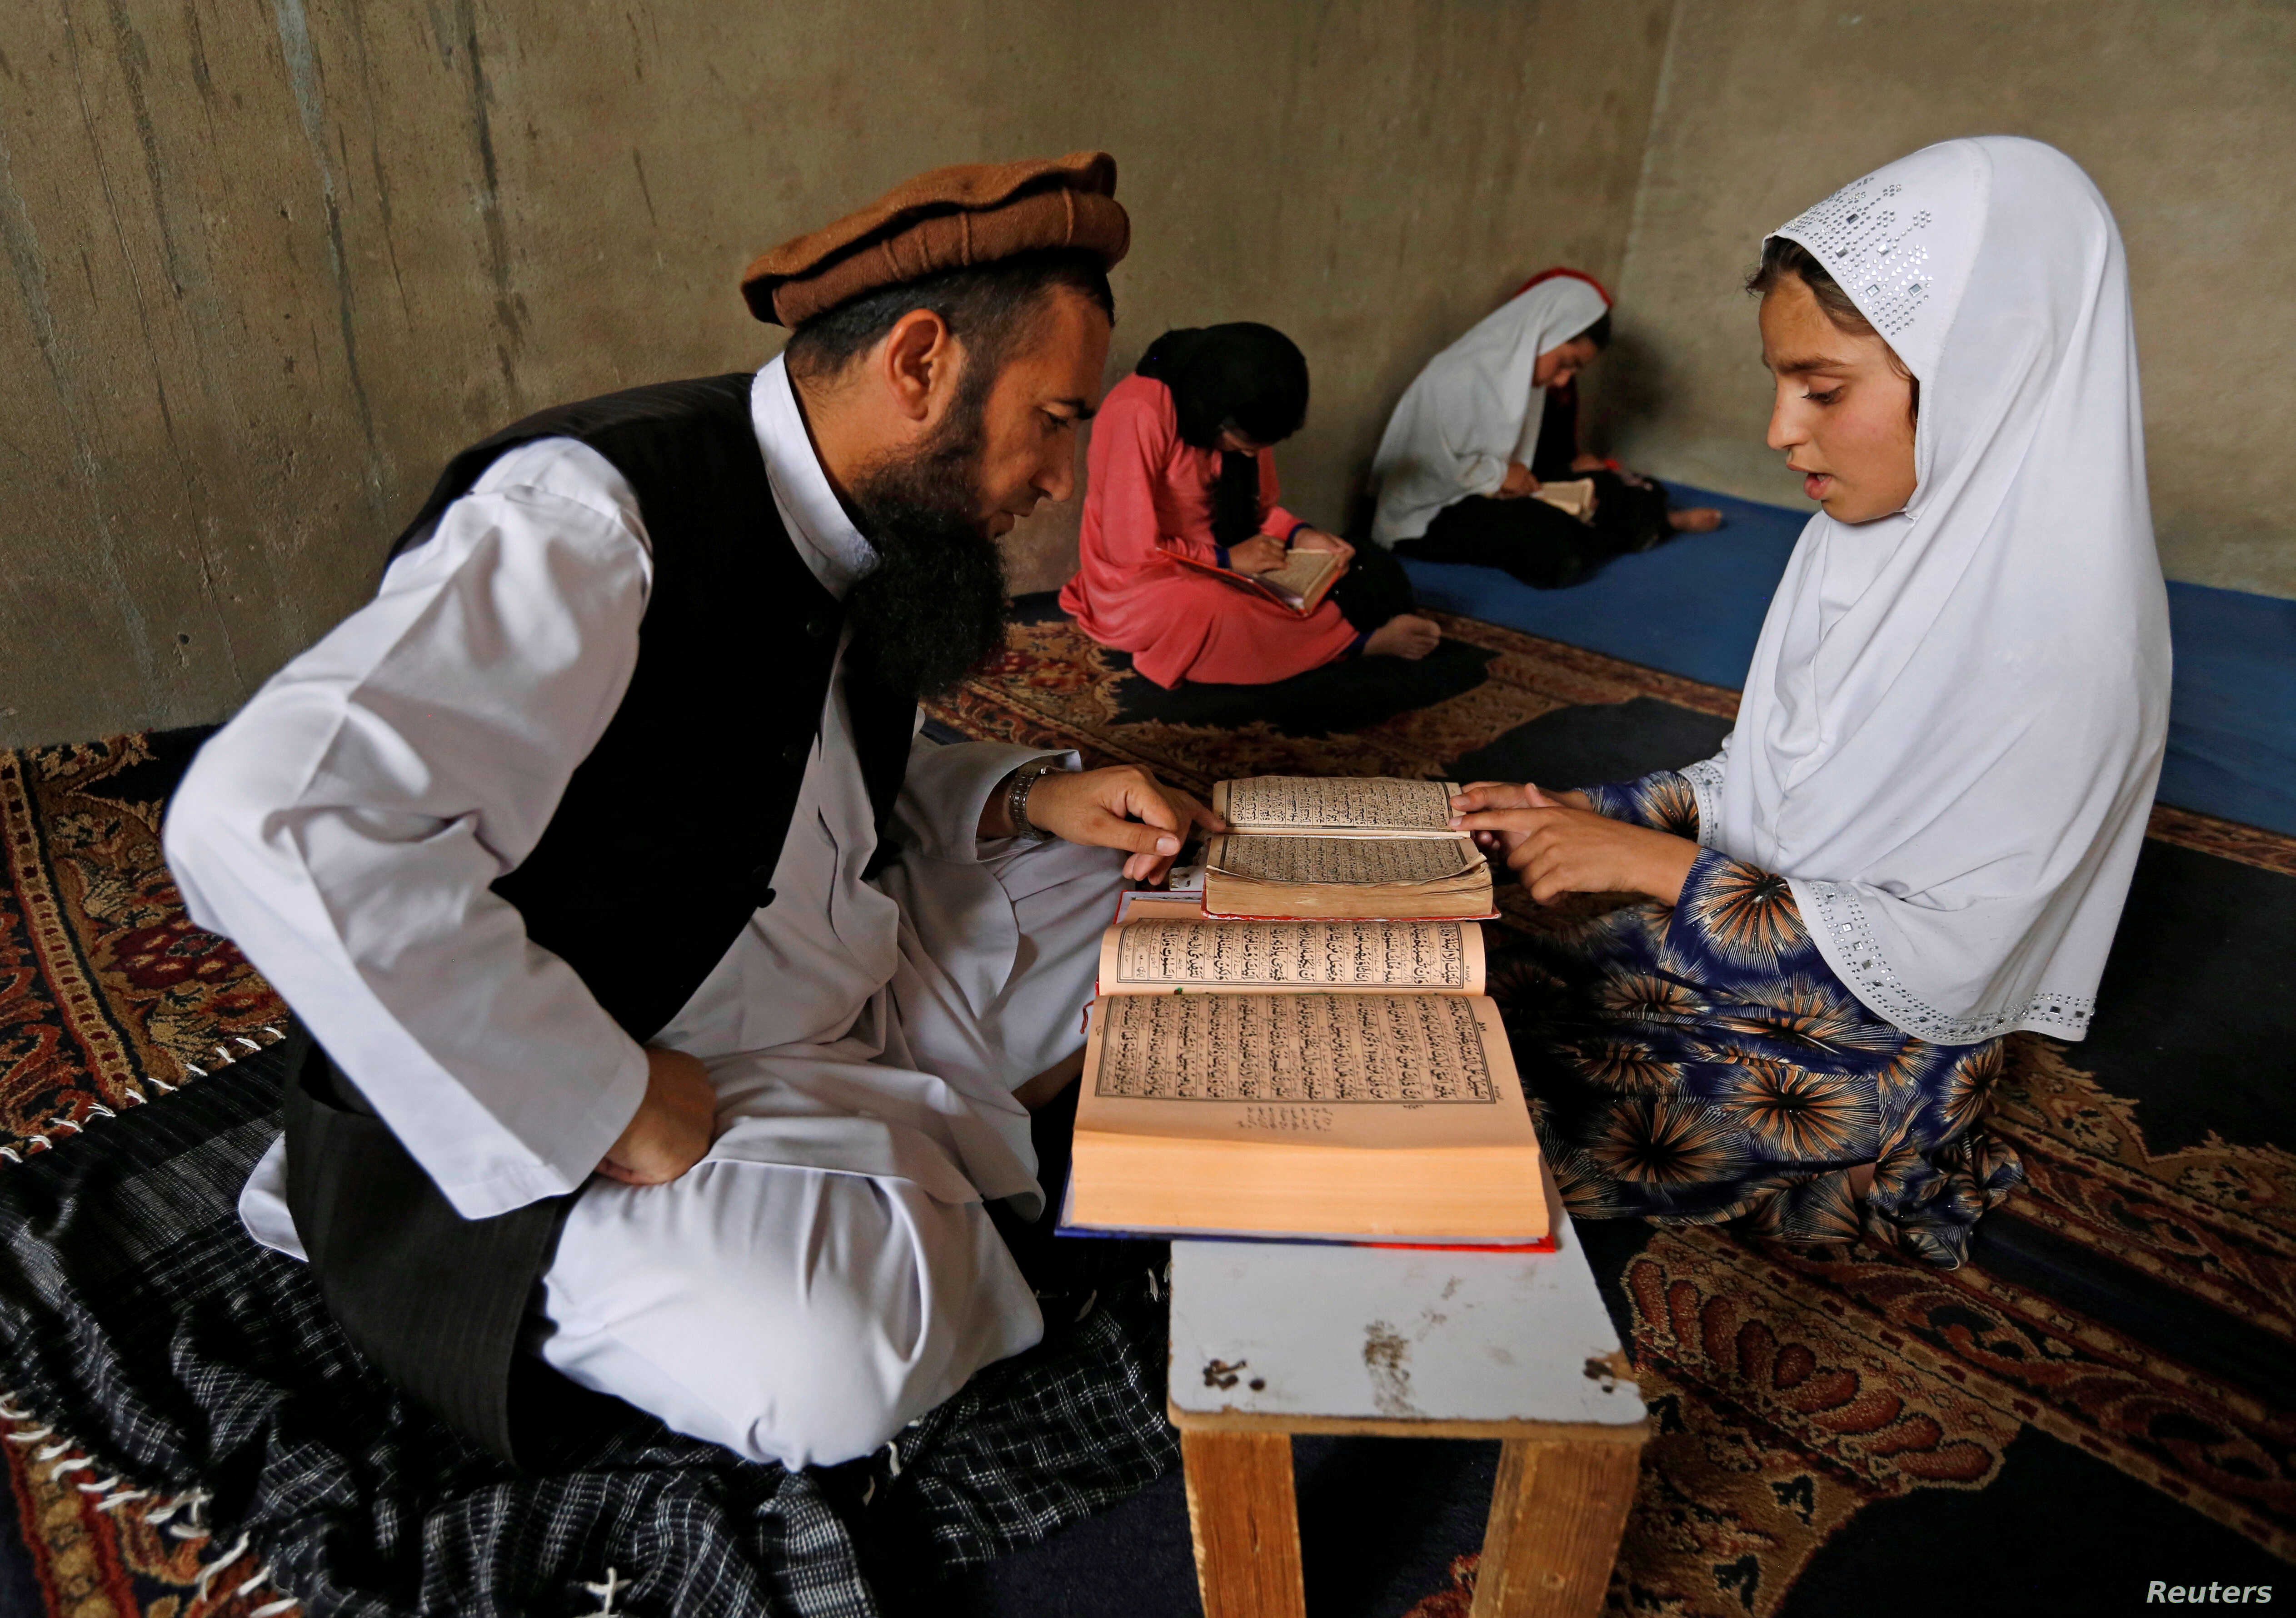 An Afghan girl reads the Koran in a madrasa, a religious school, during the holy month of Ramadan in Kabul, Afghanistan June 16, 2016.